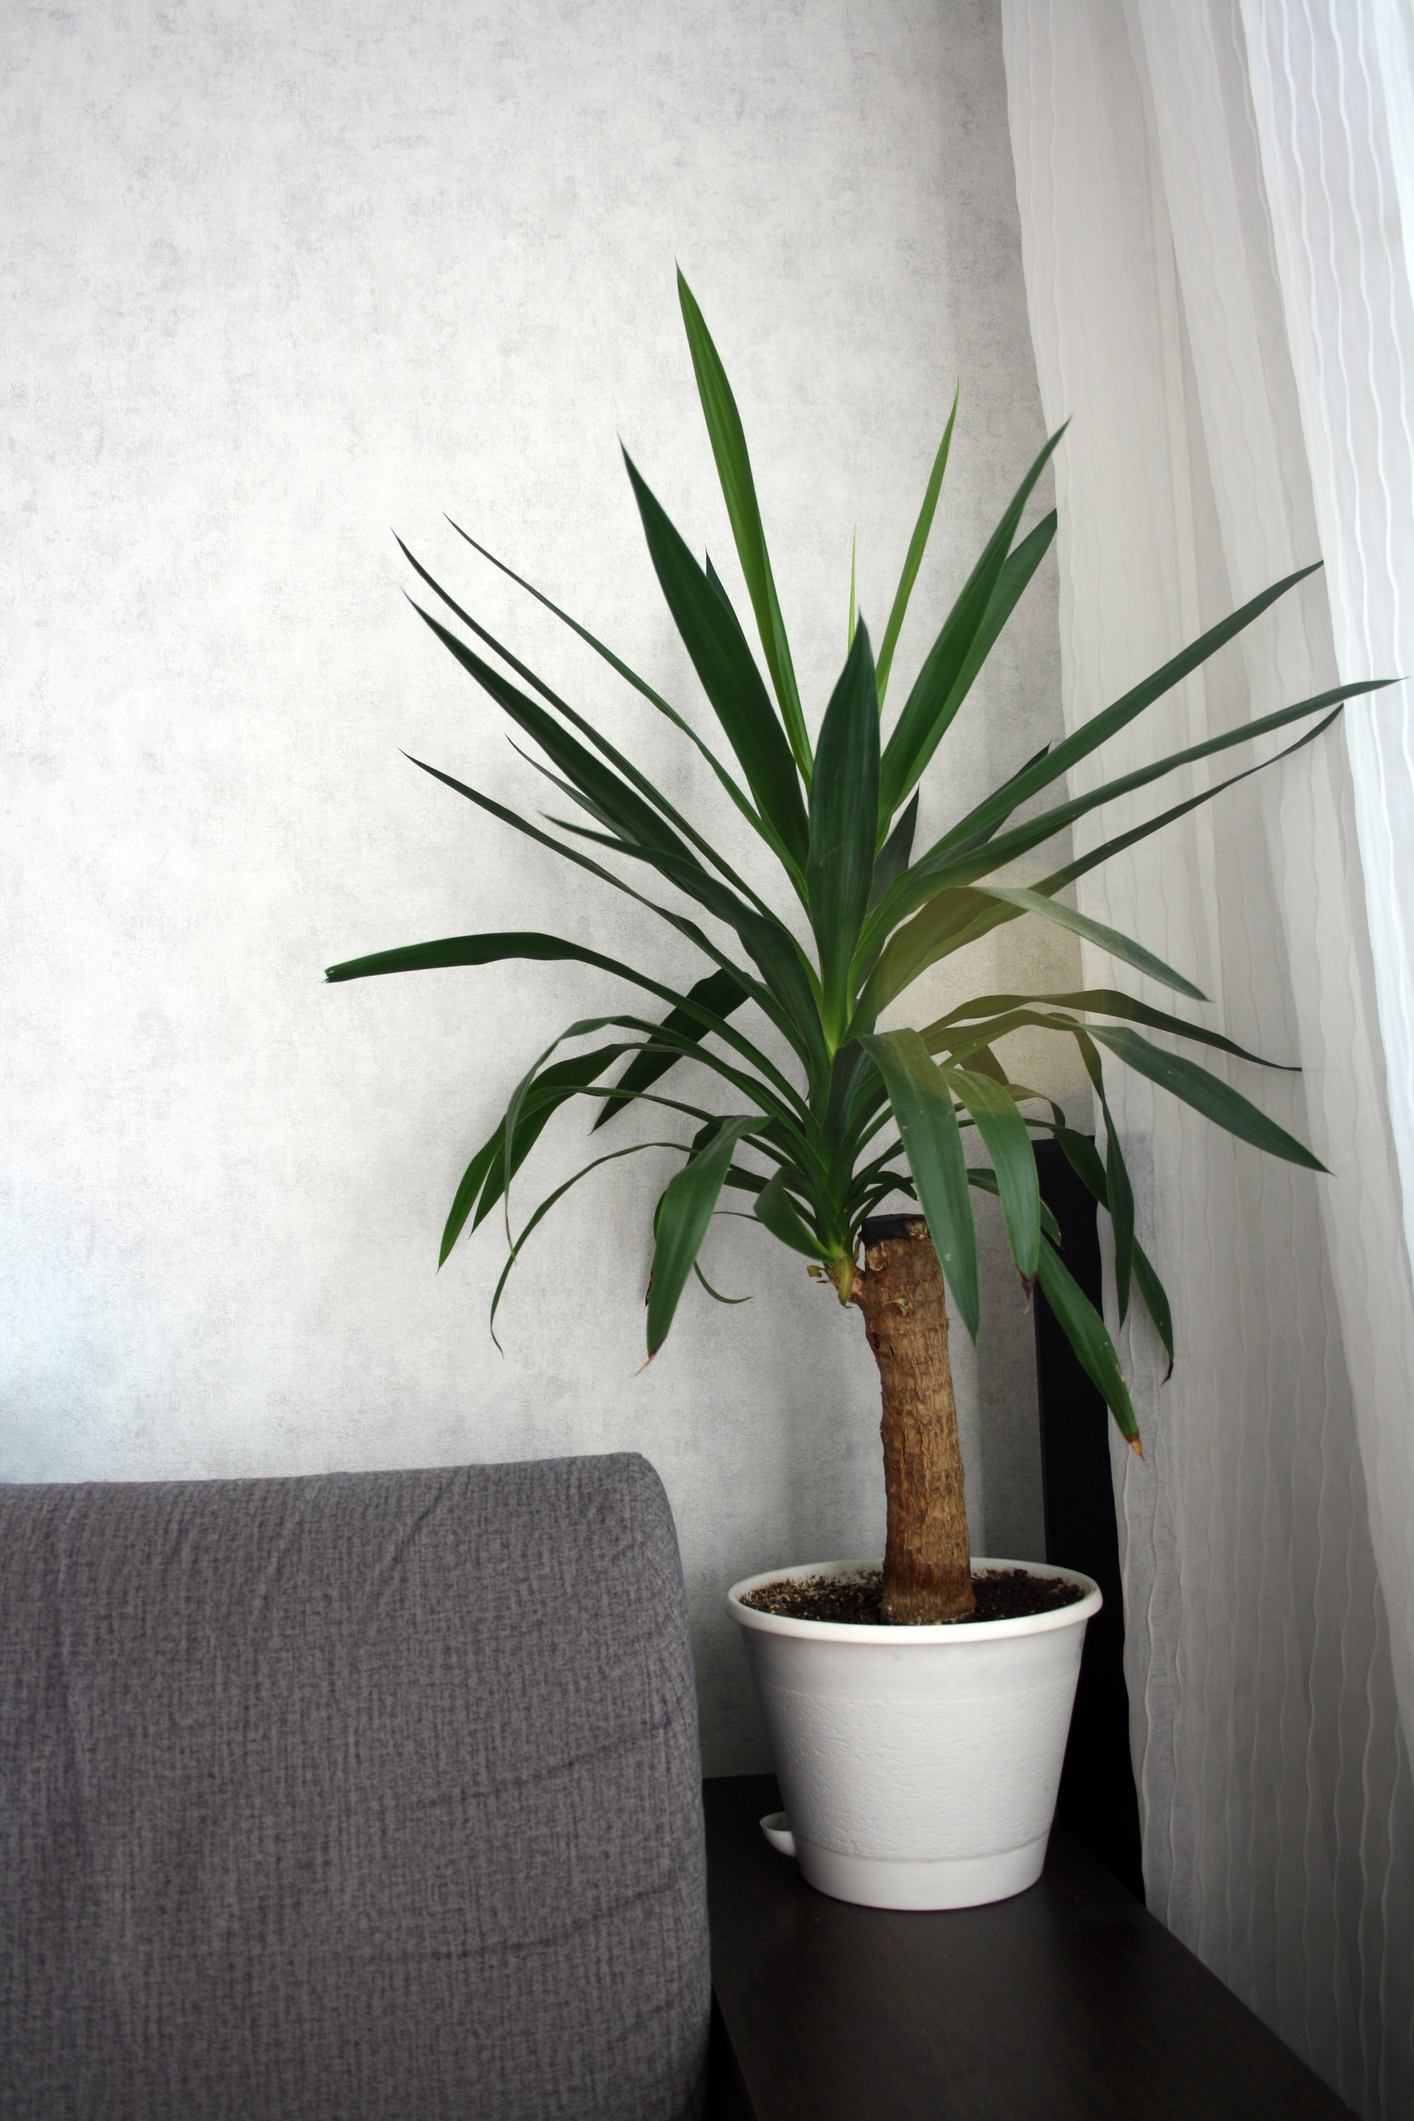 Yucca a houseplant against a white wall a plant on the armrest of a gray sofa